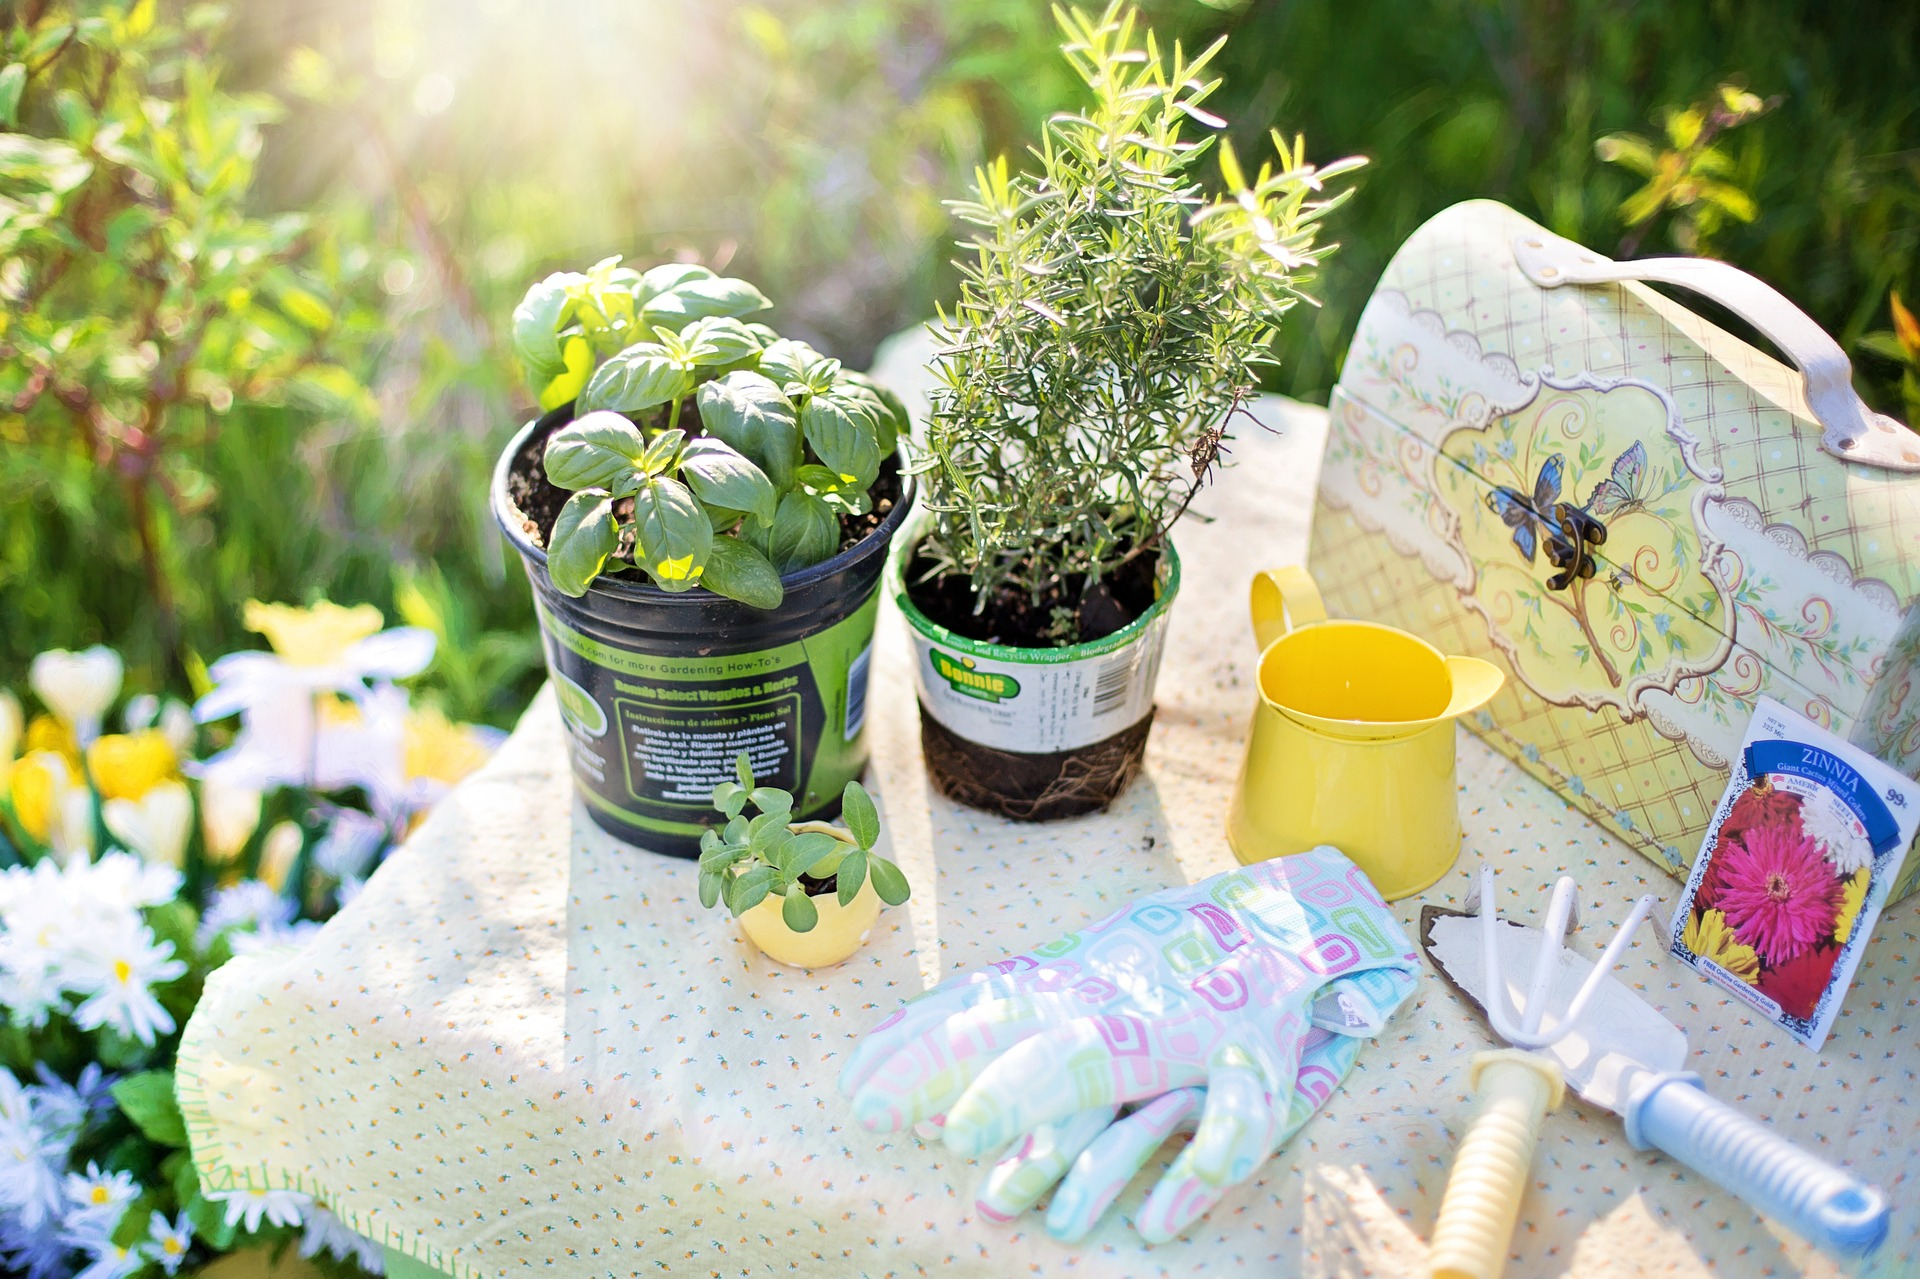 Top summer gardening tips the plant guide - Summer time gardening tips ...